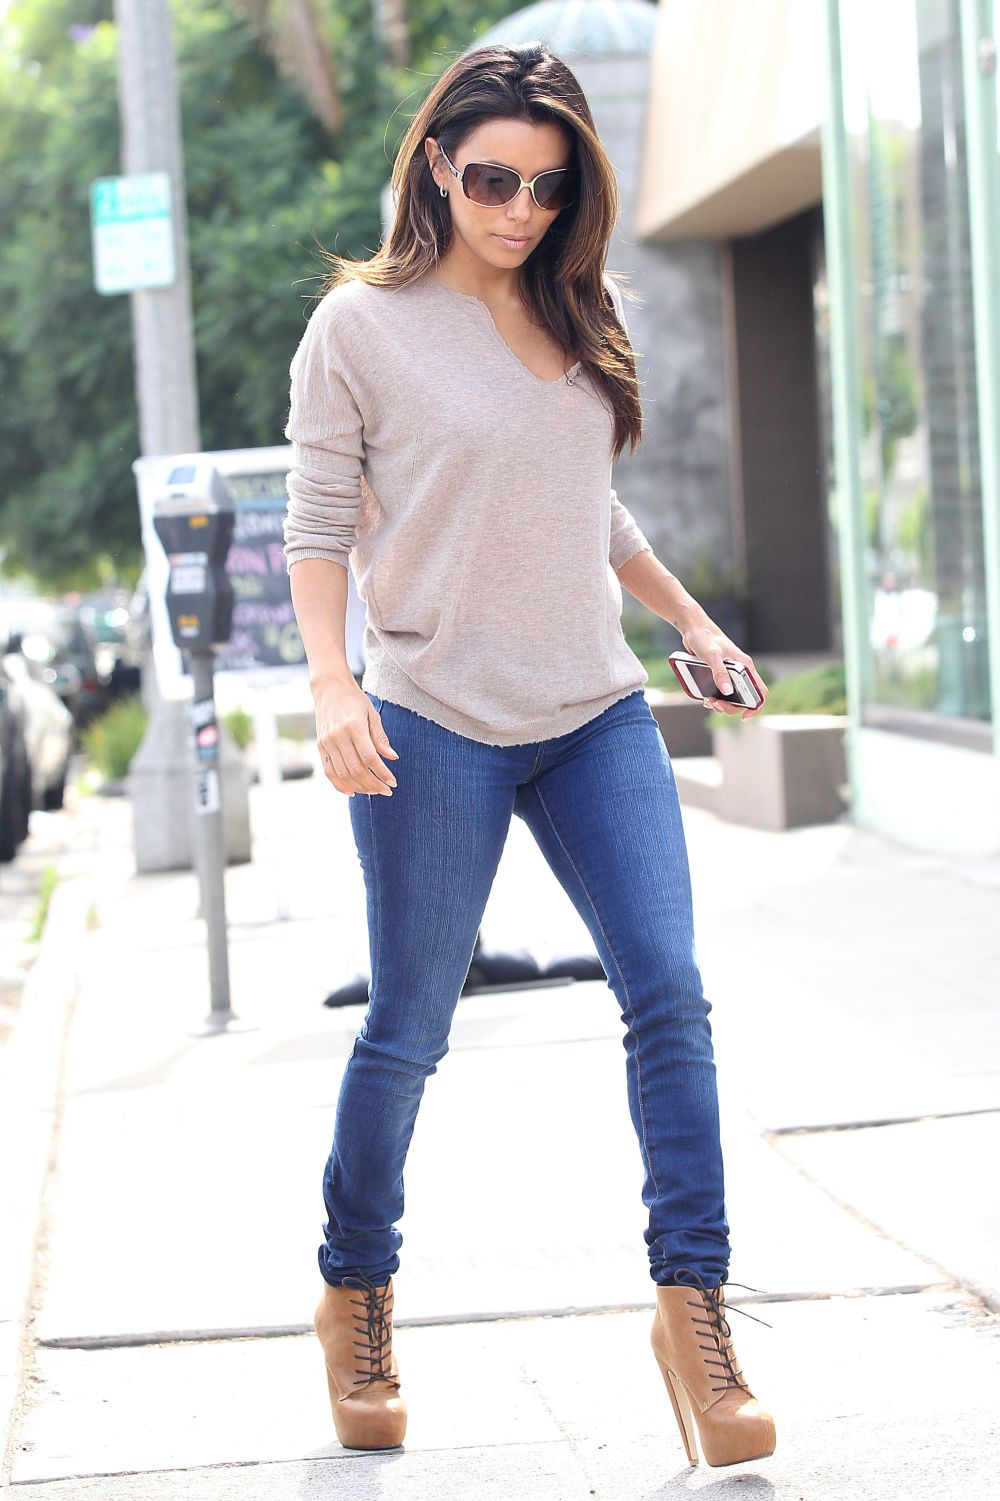 Celebrity Tight Jeans and High Heels